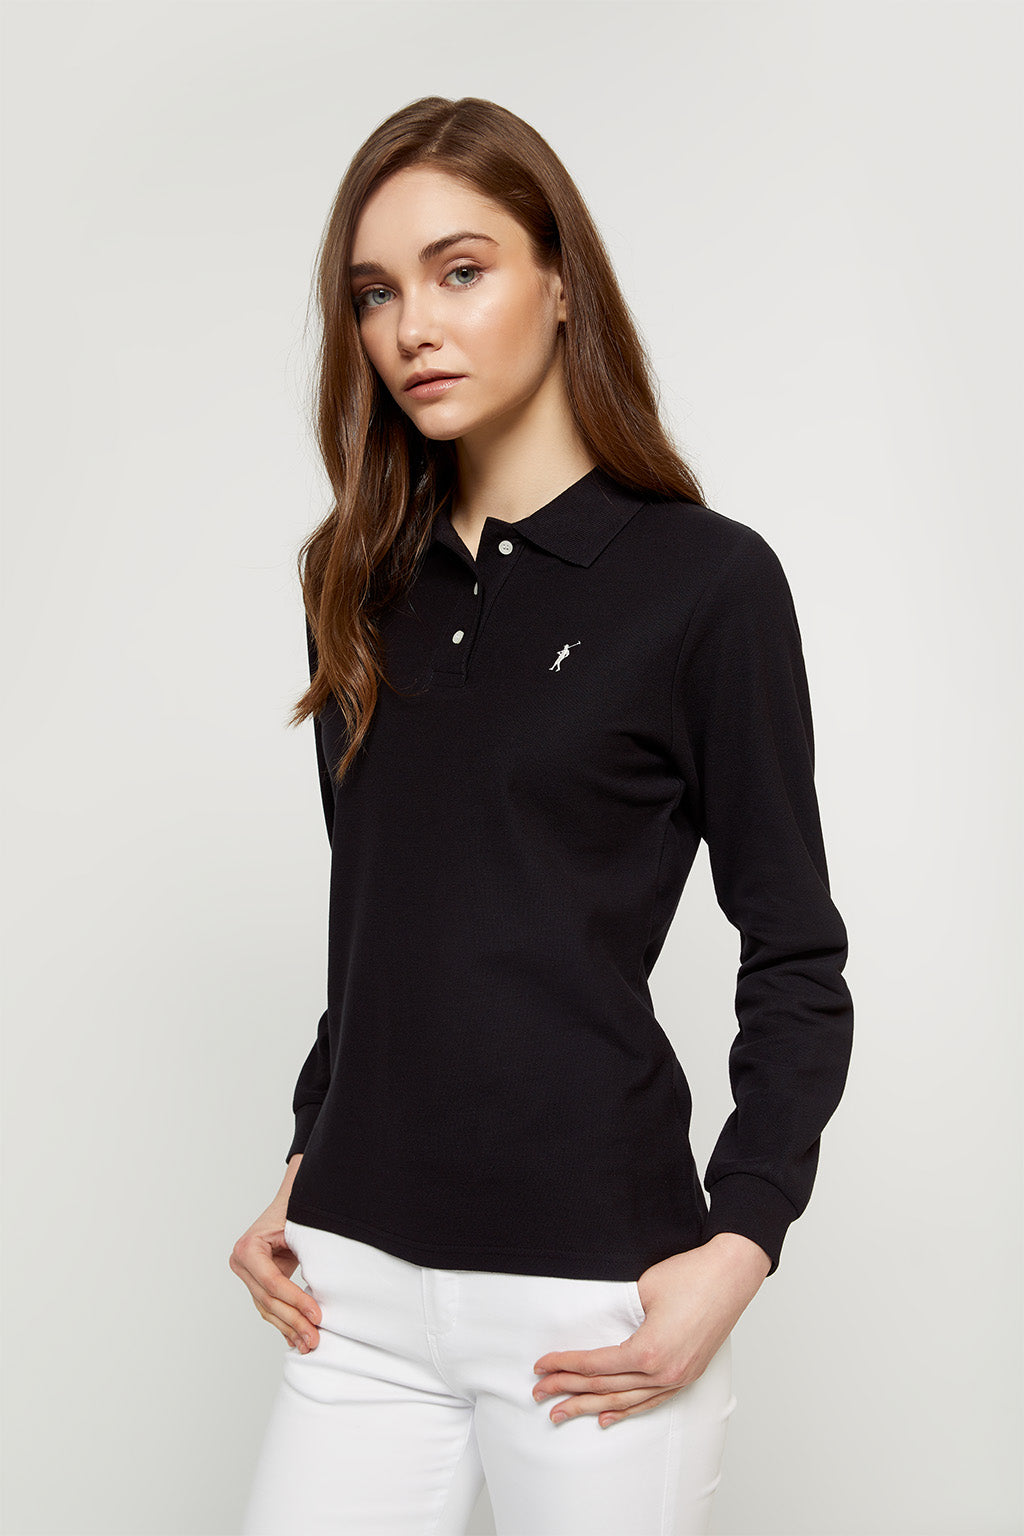 Black long sleeve polo shirt with contrast embroidered logo